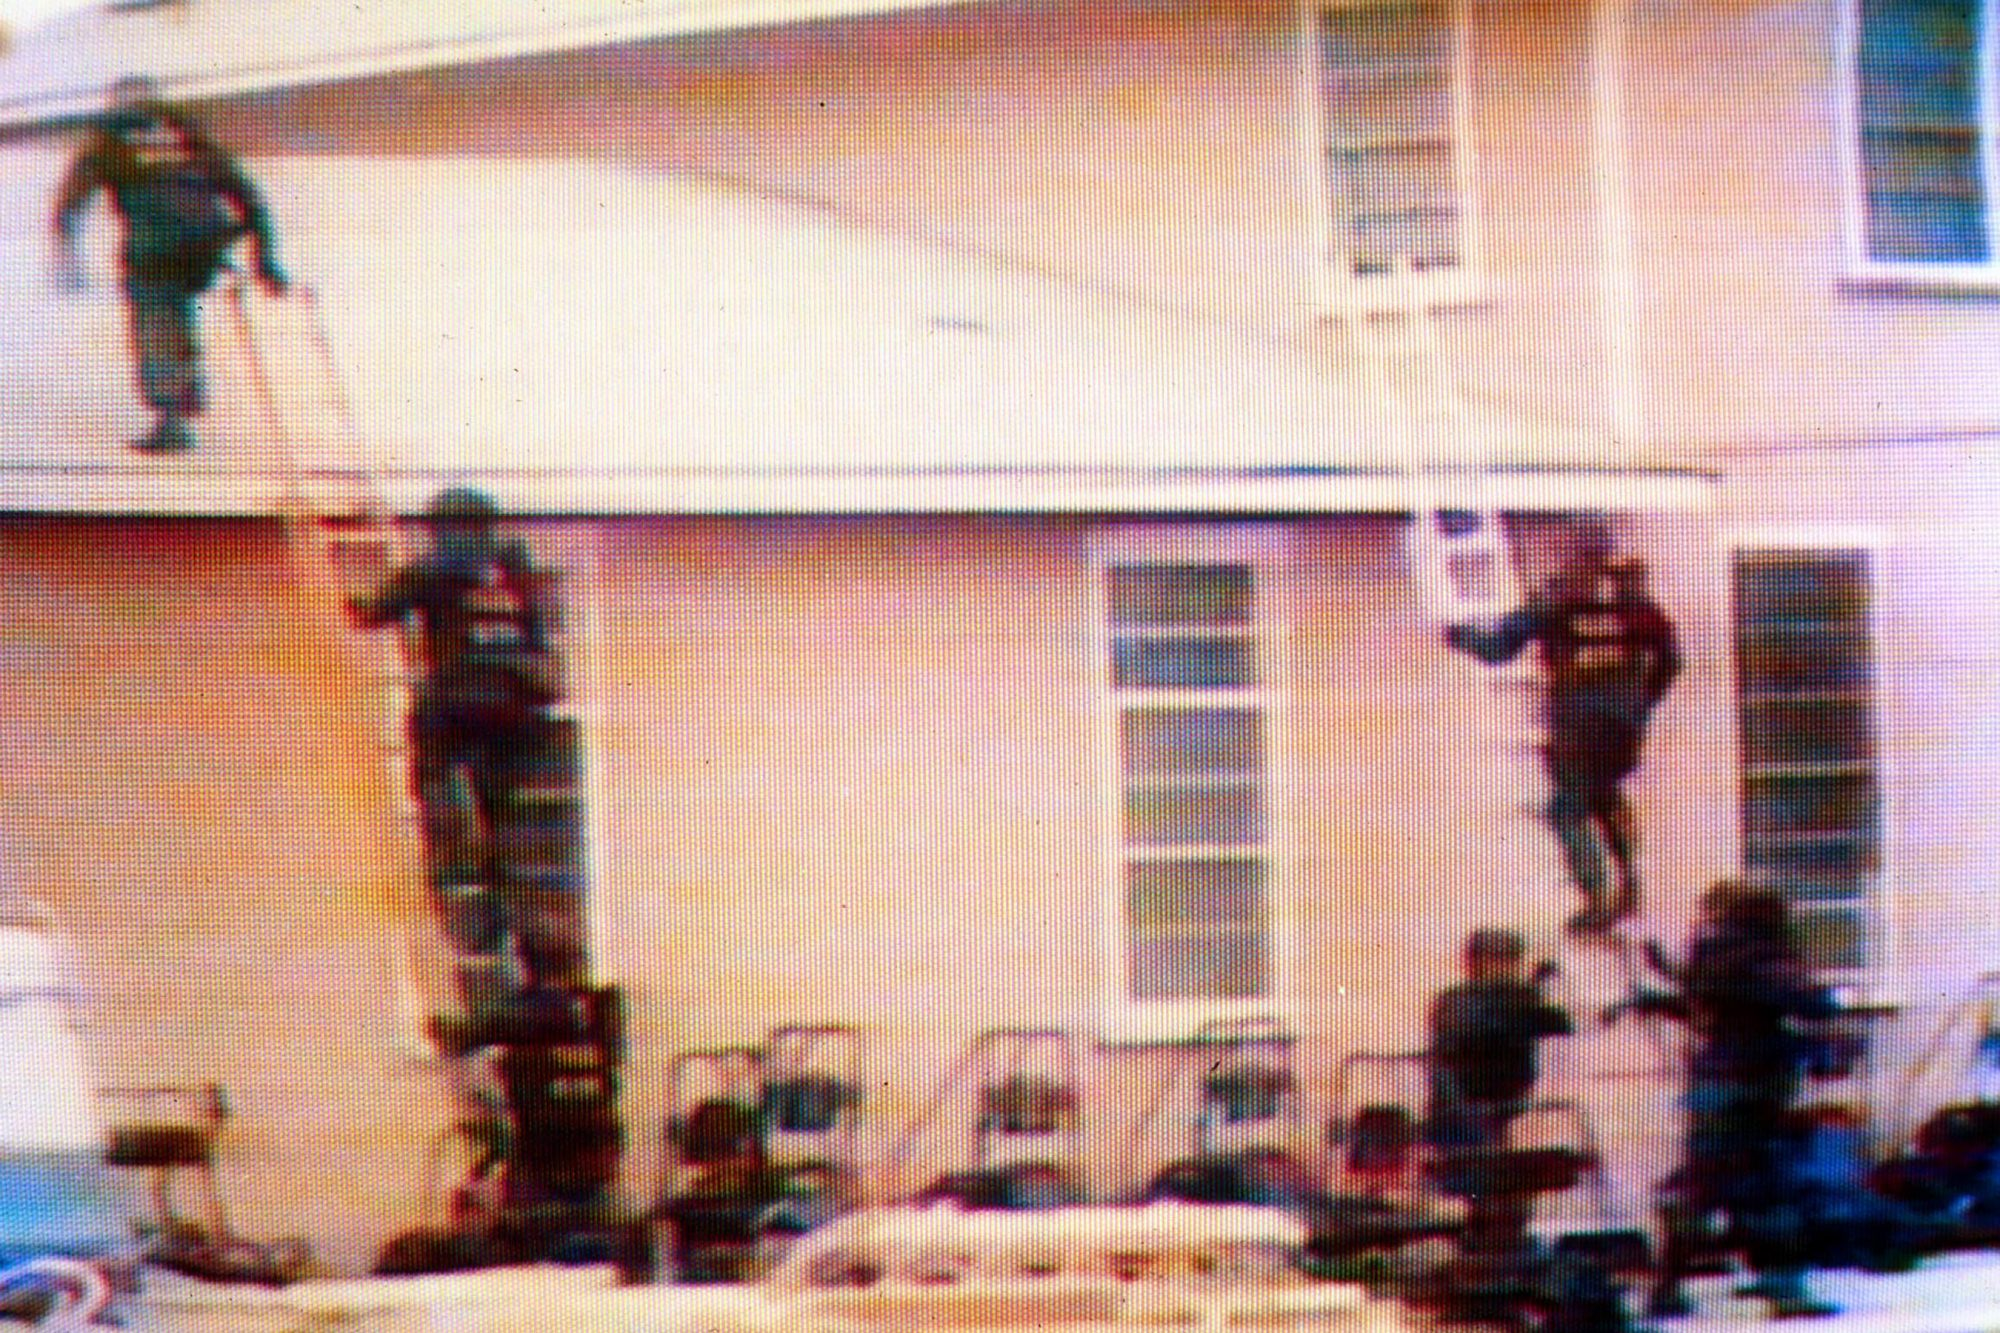 WACO SIEGE OF THE BRANCH DAVIDIAN RELIGIOUS SECT RANCH, TEXAS, AMERICA  -  MAR 1993